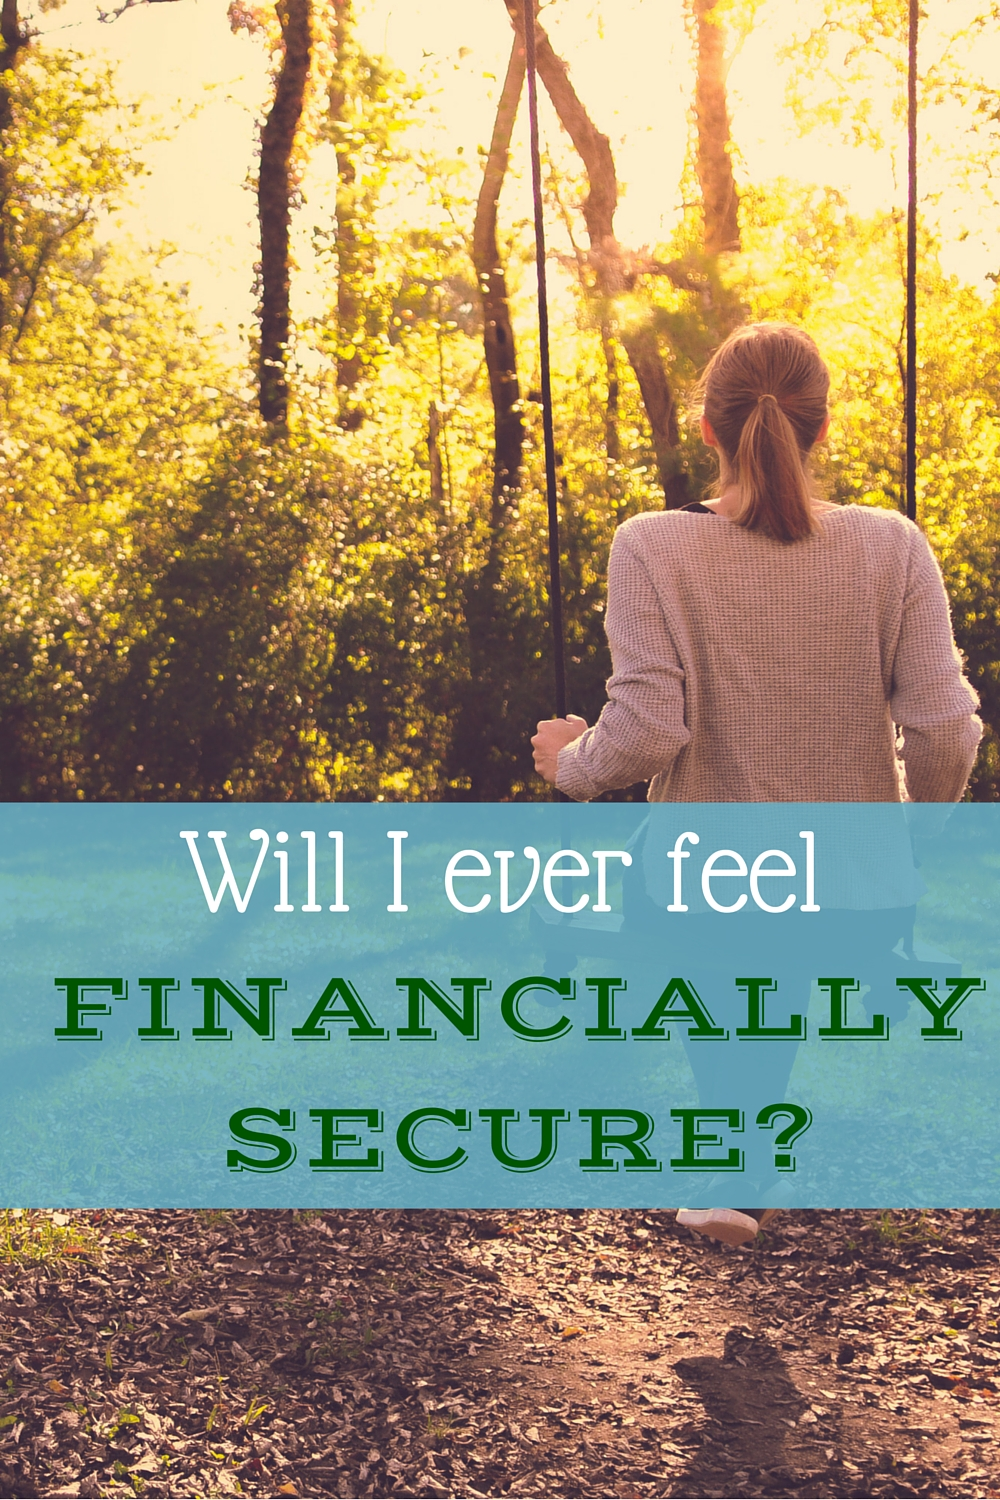 Even with frugality and careful personal finance, it's hard to feel like you have financial security.